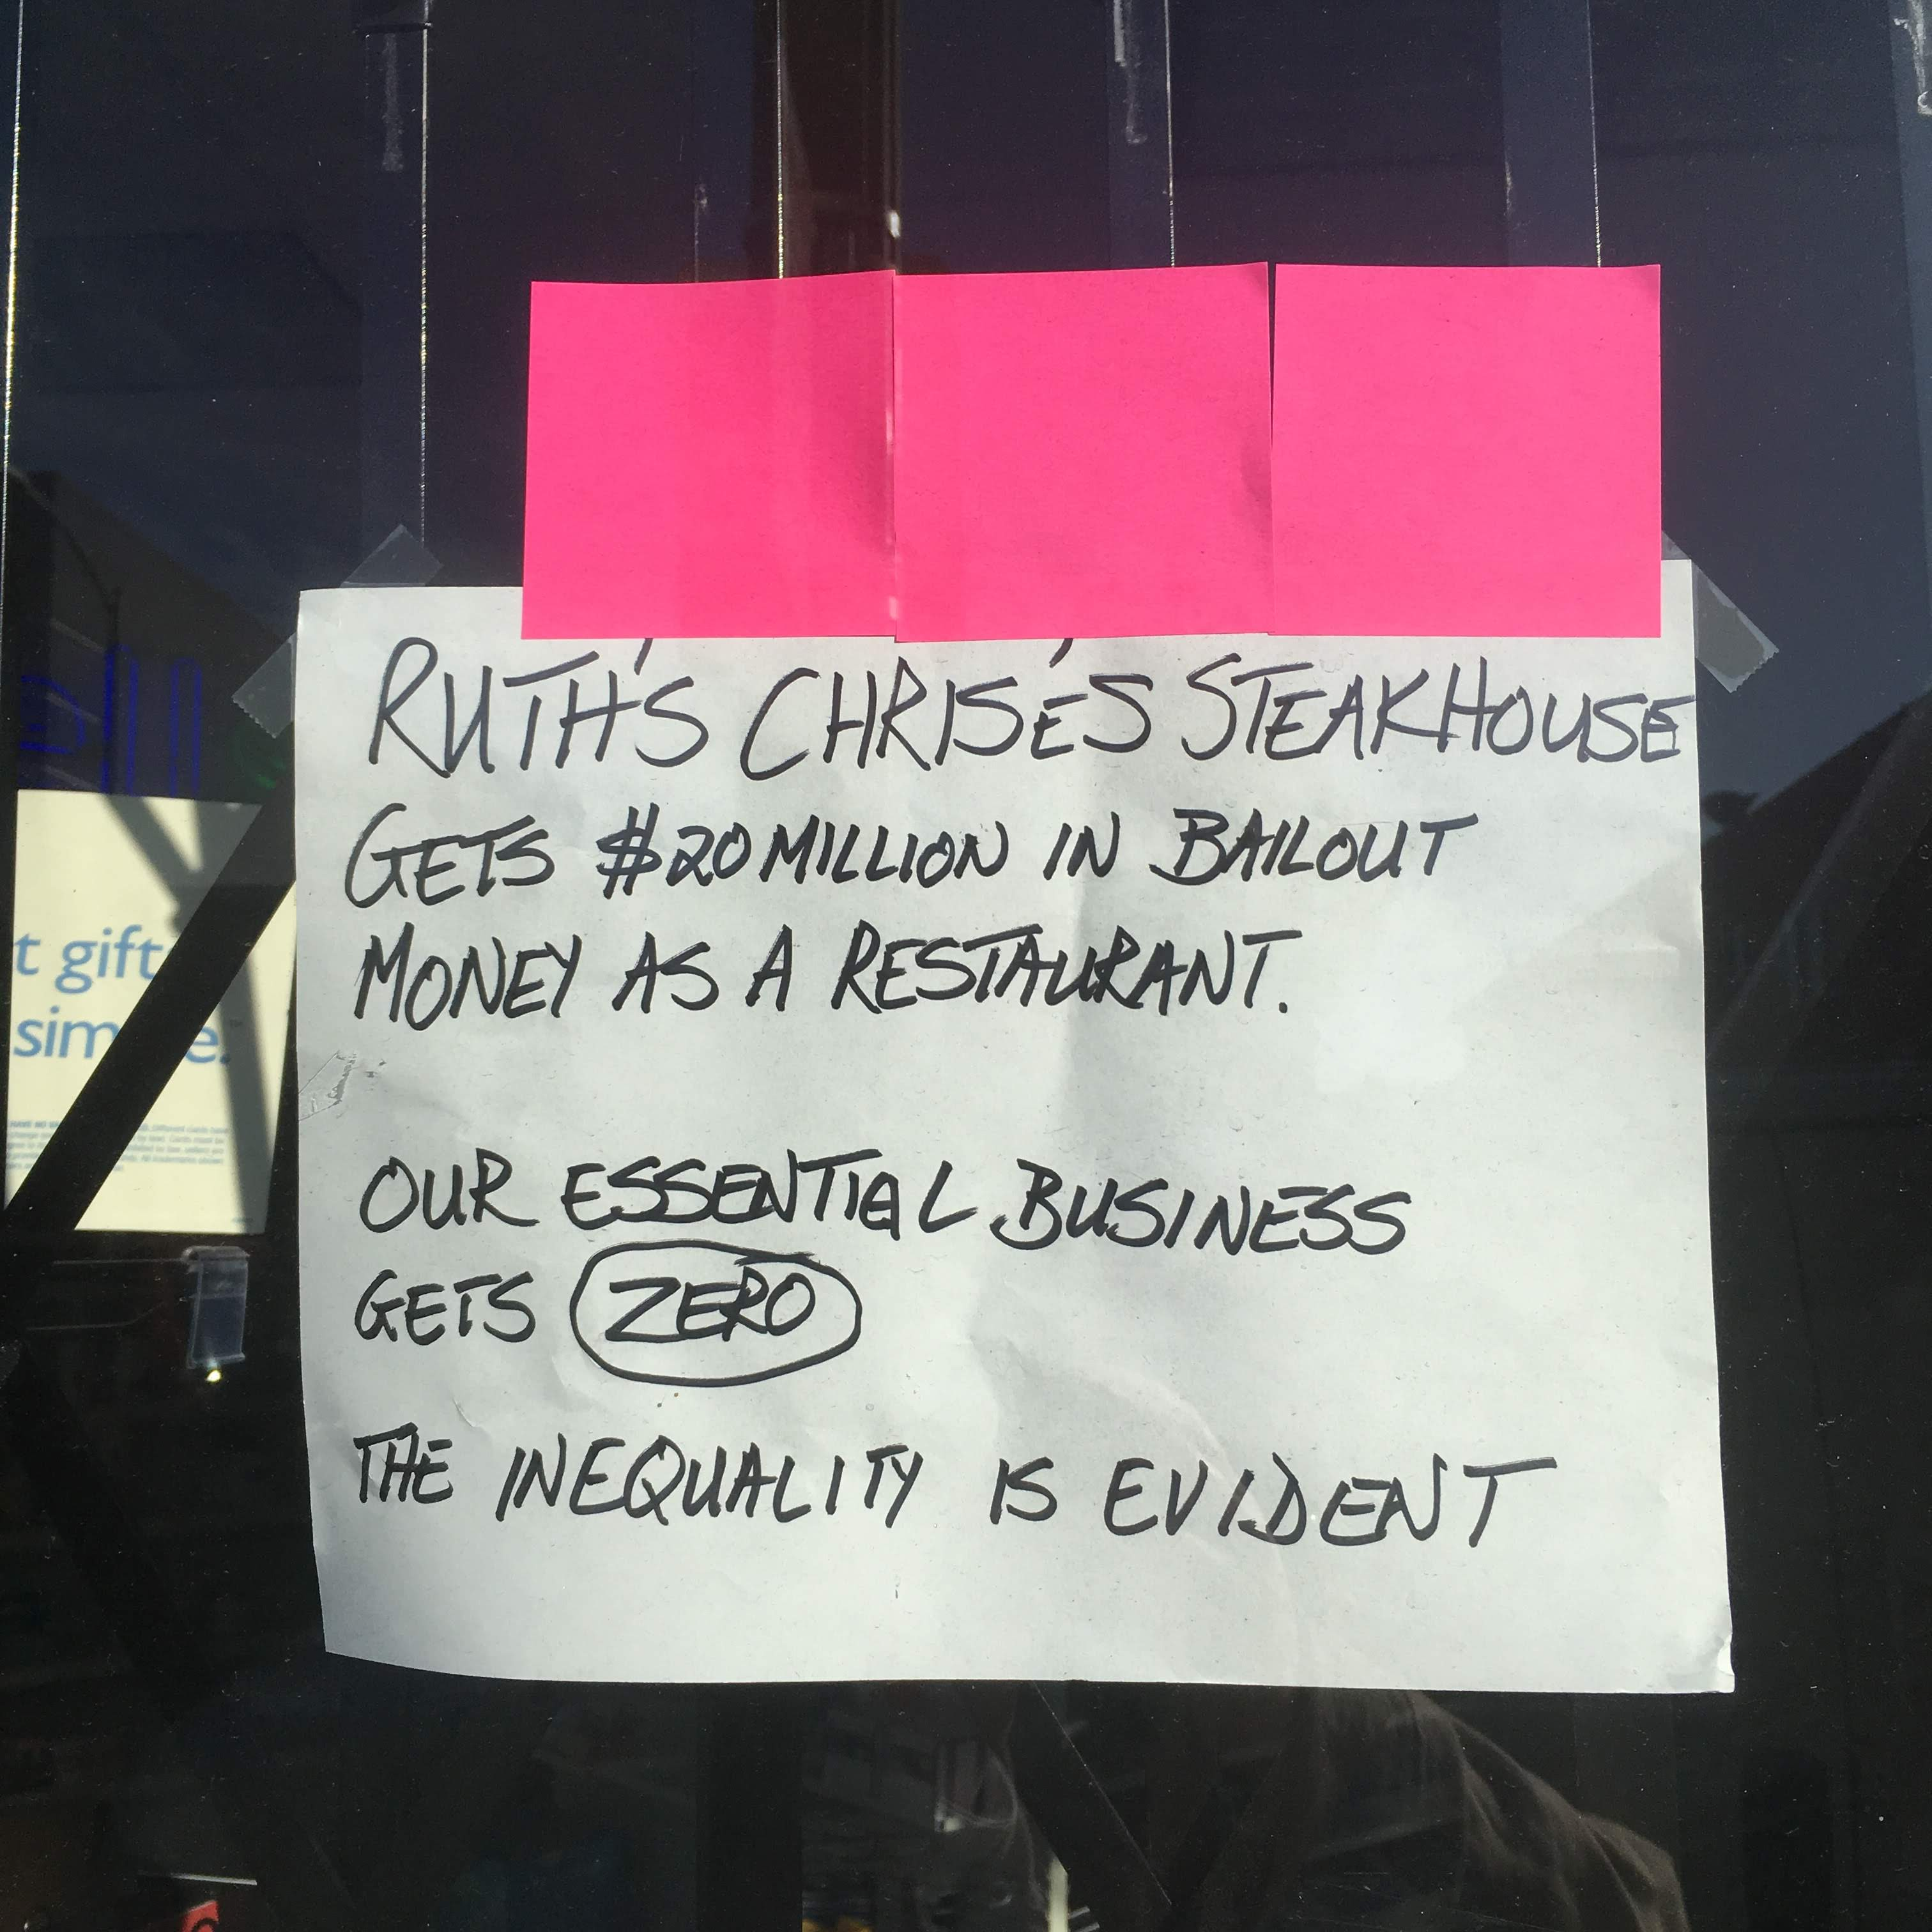 Hand-written sign in the window of Wellspring Pharmacy, Oakland, commenting on their business receiving no bailout money